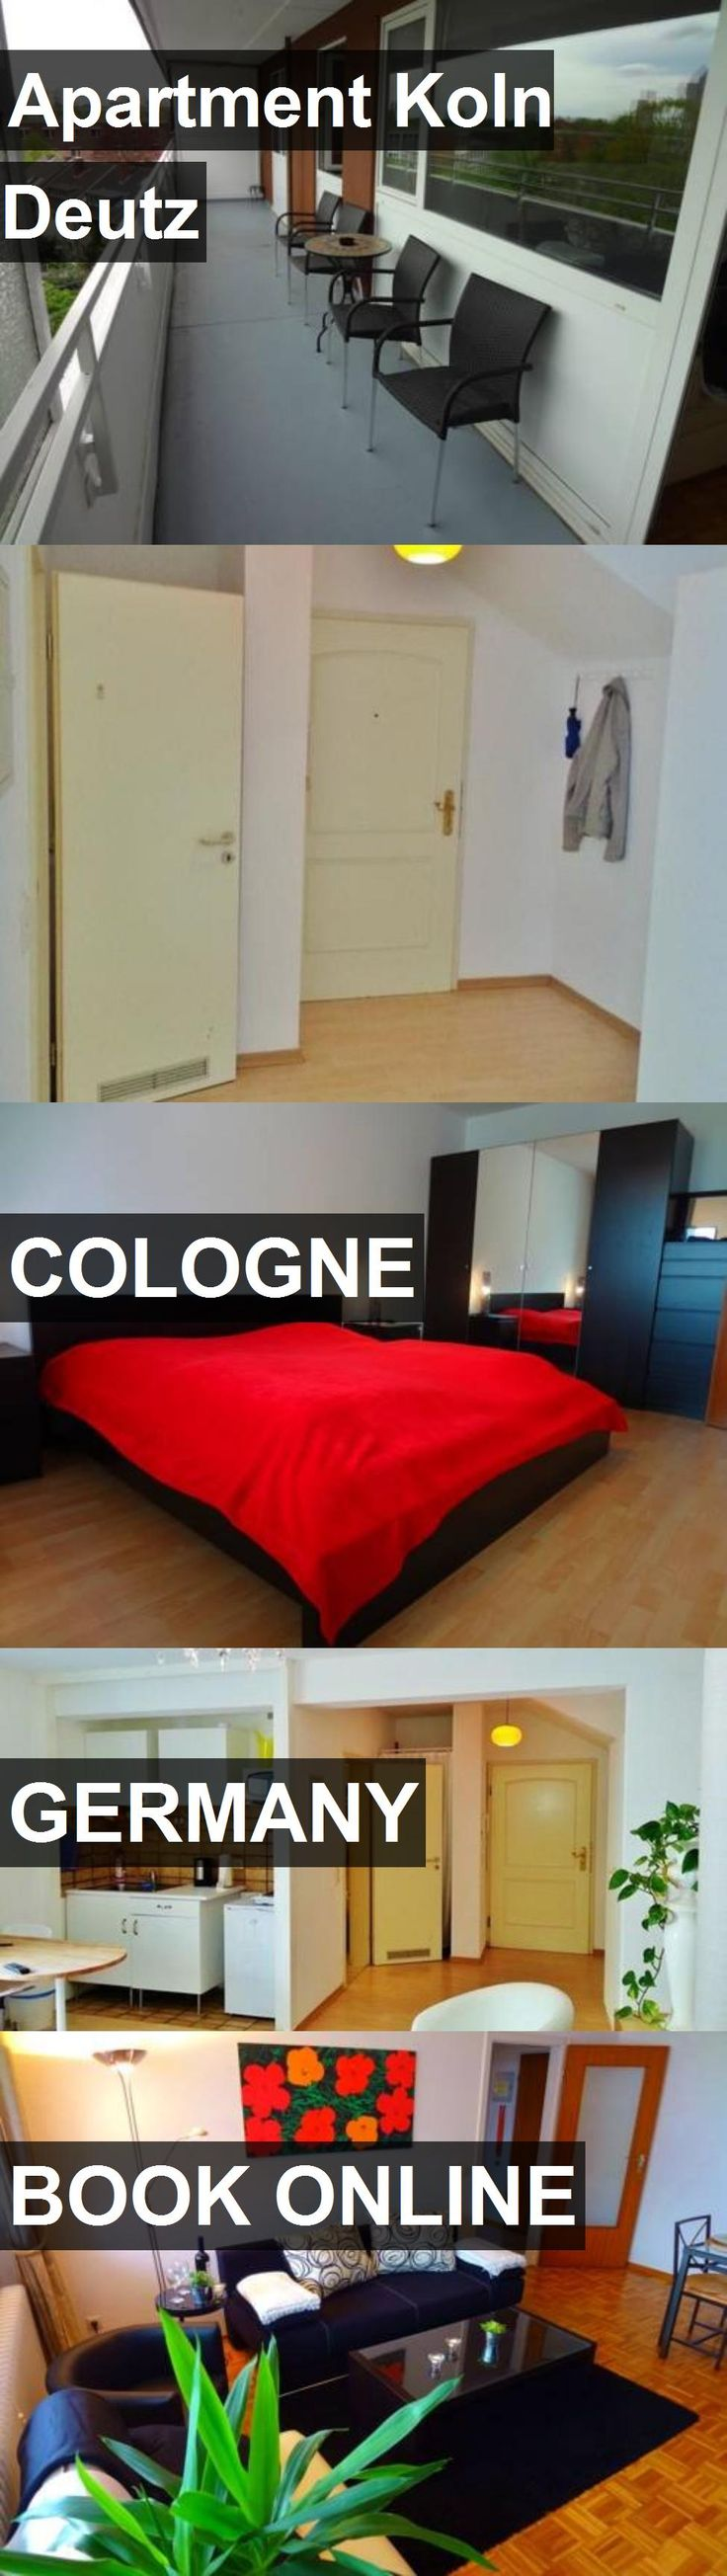 Apartment Koln Deutz in Cologne, Germany. For more information, photos, reviews and best prices please follow the link. #Germany #Cologne #travel #vacation #apartment